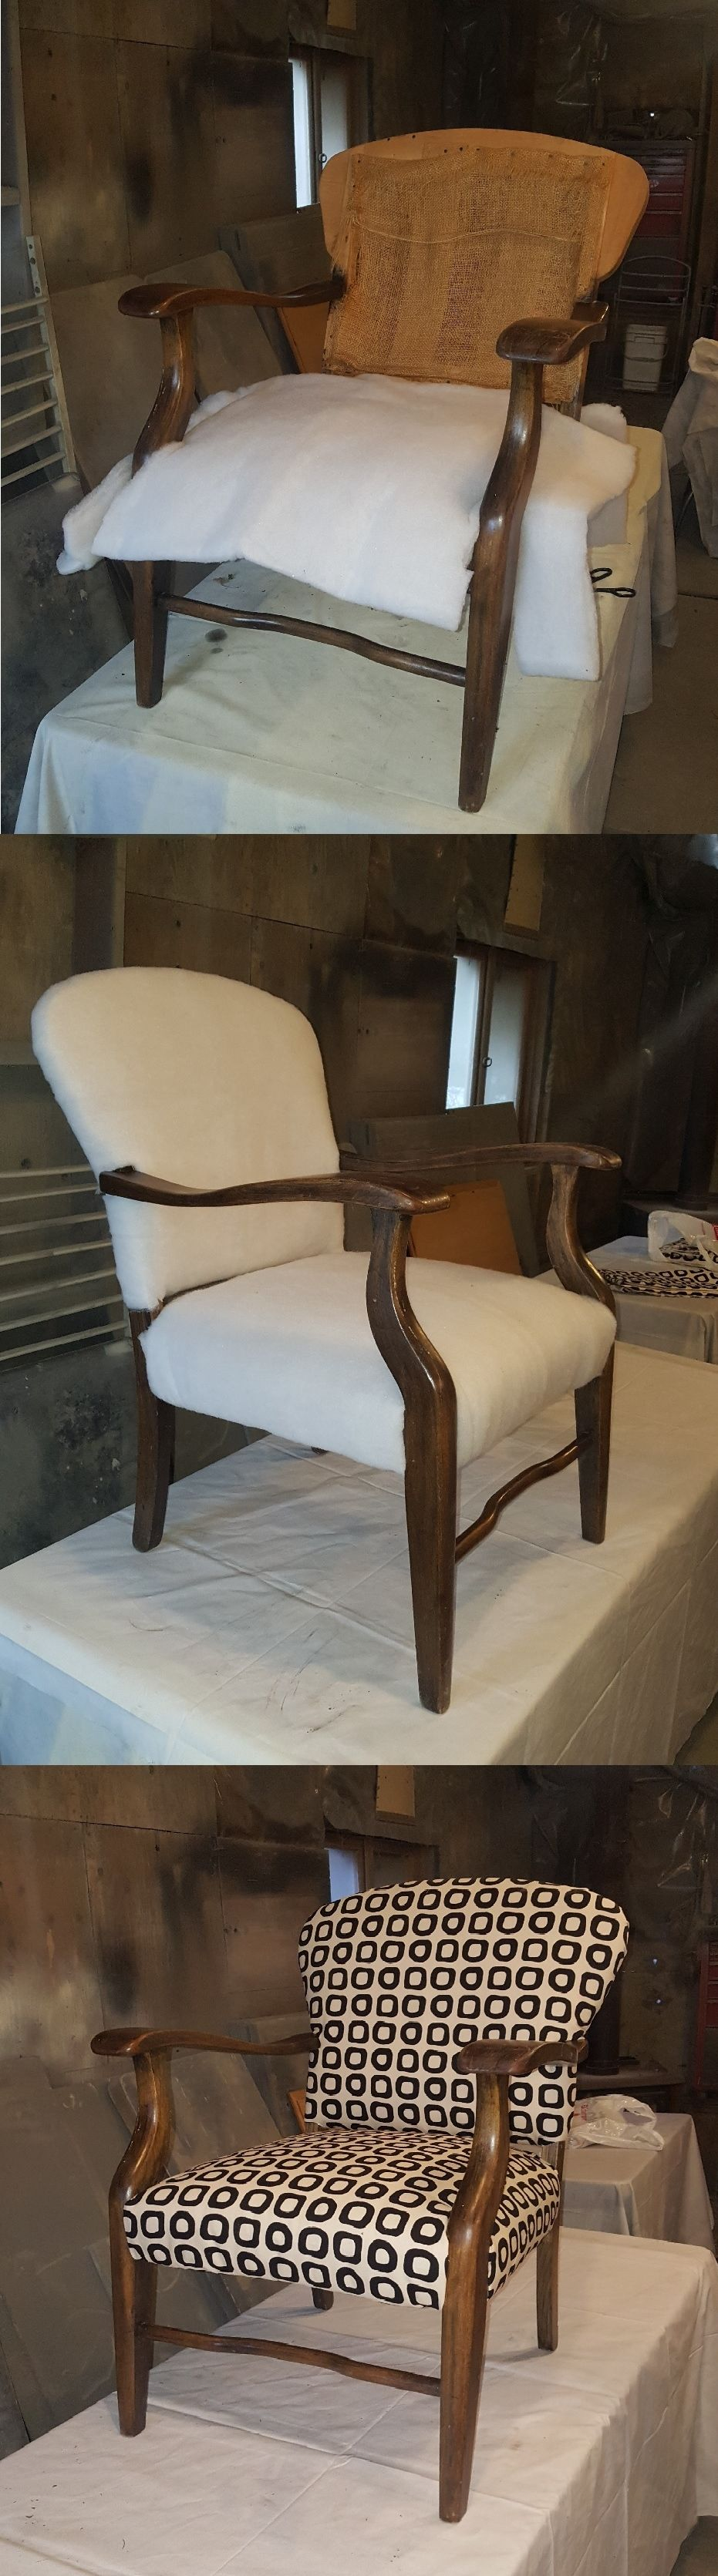 how to reupholster a dining chair with springs